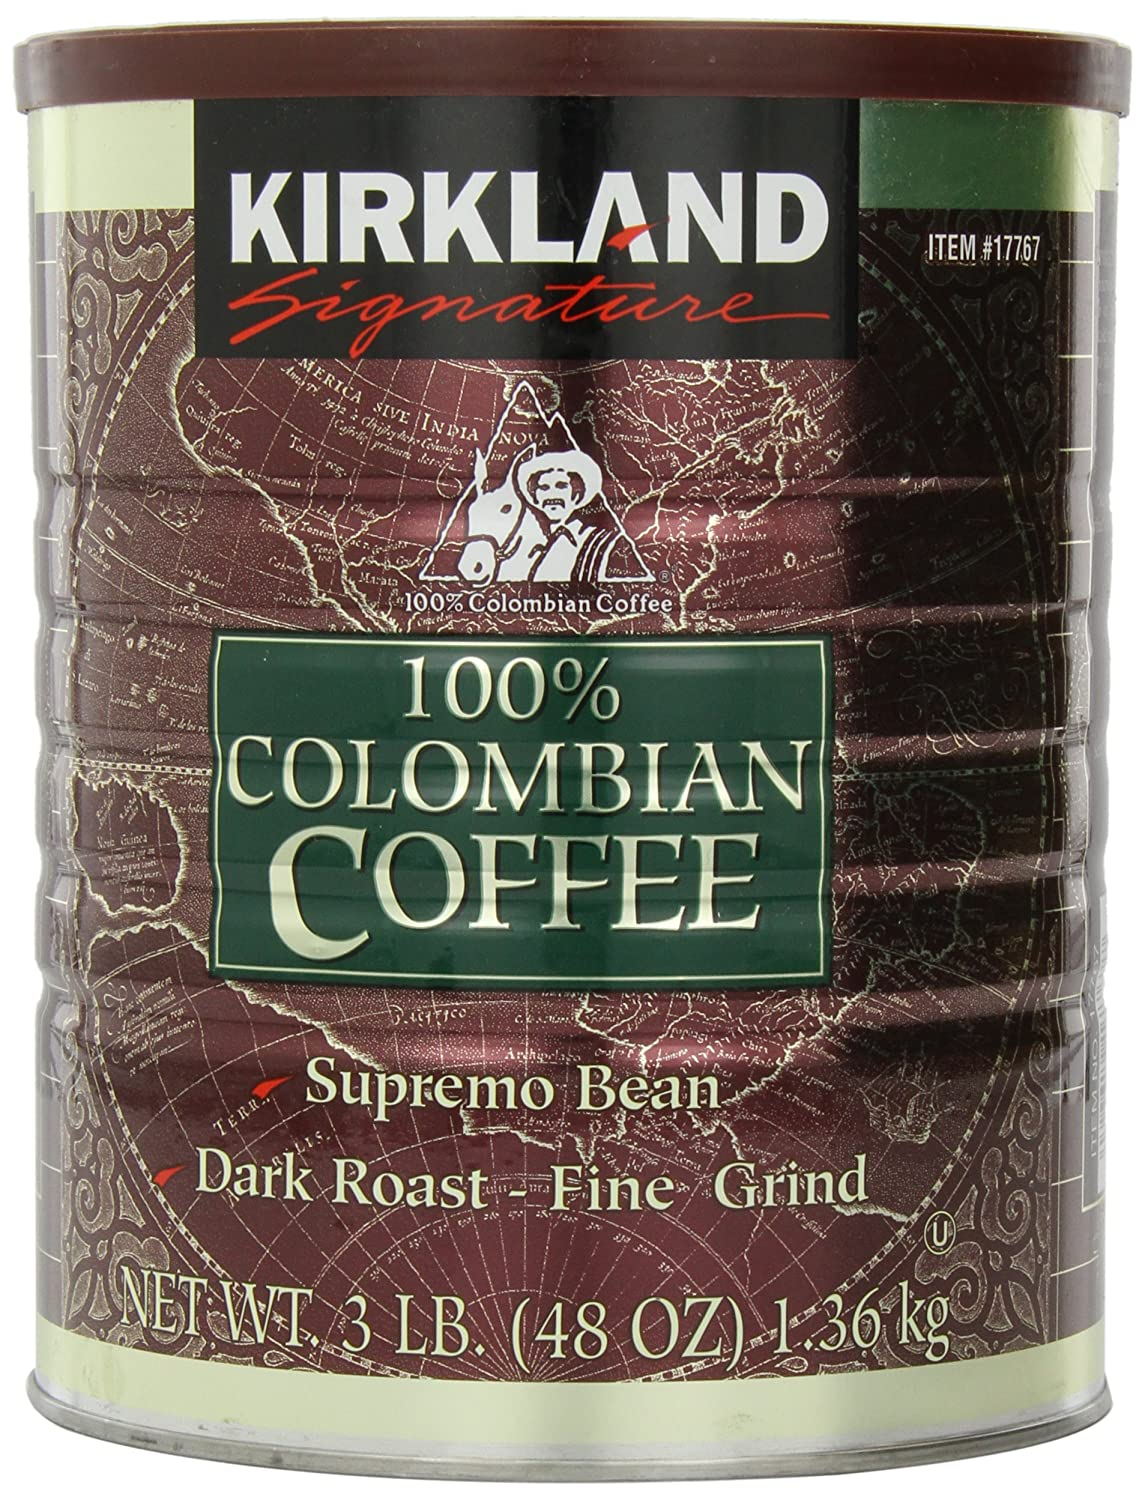 Signature 100% Colombian Coffee Supremo Bean Dark Roast-Fine Grind